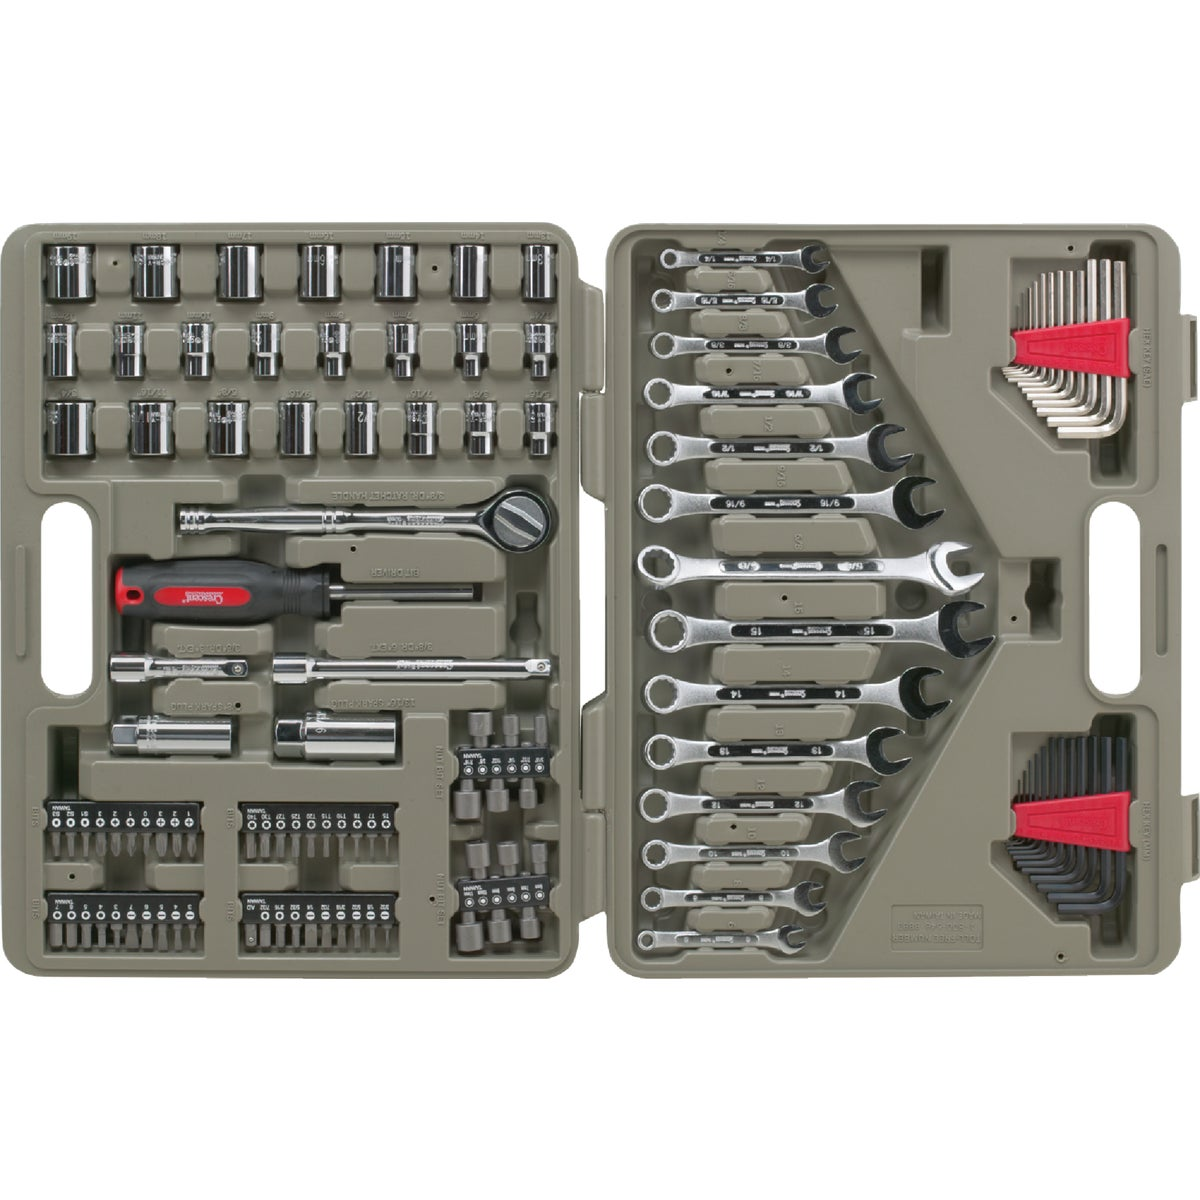 CRESCENT 128PC TOOL SET - CTK128MP2 by Apex Tool Group